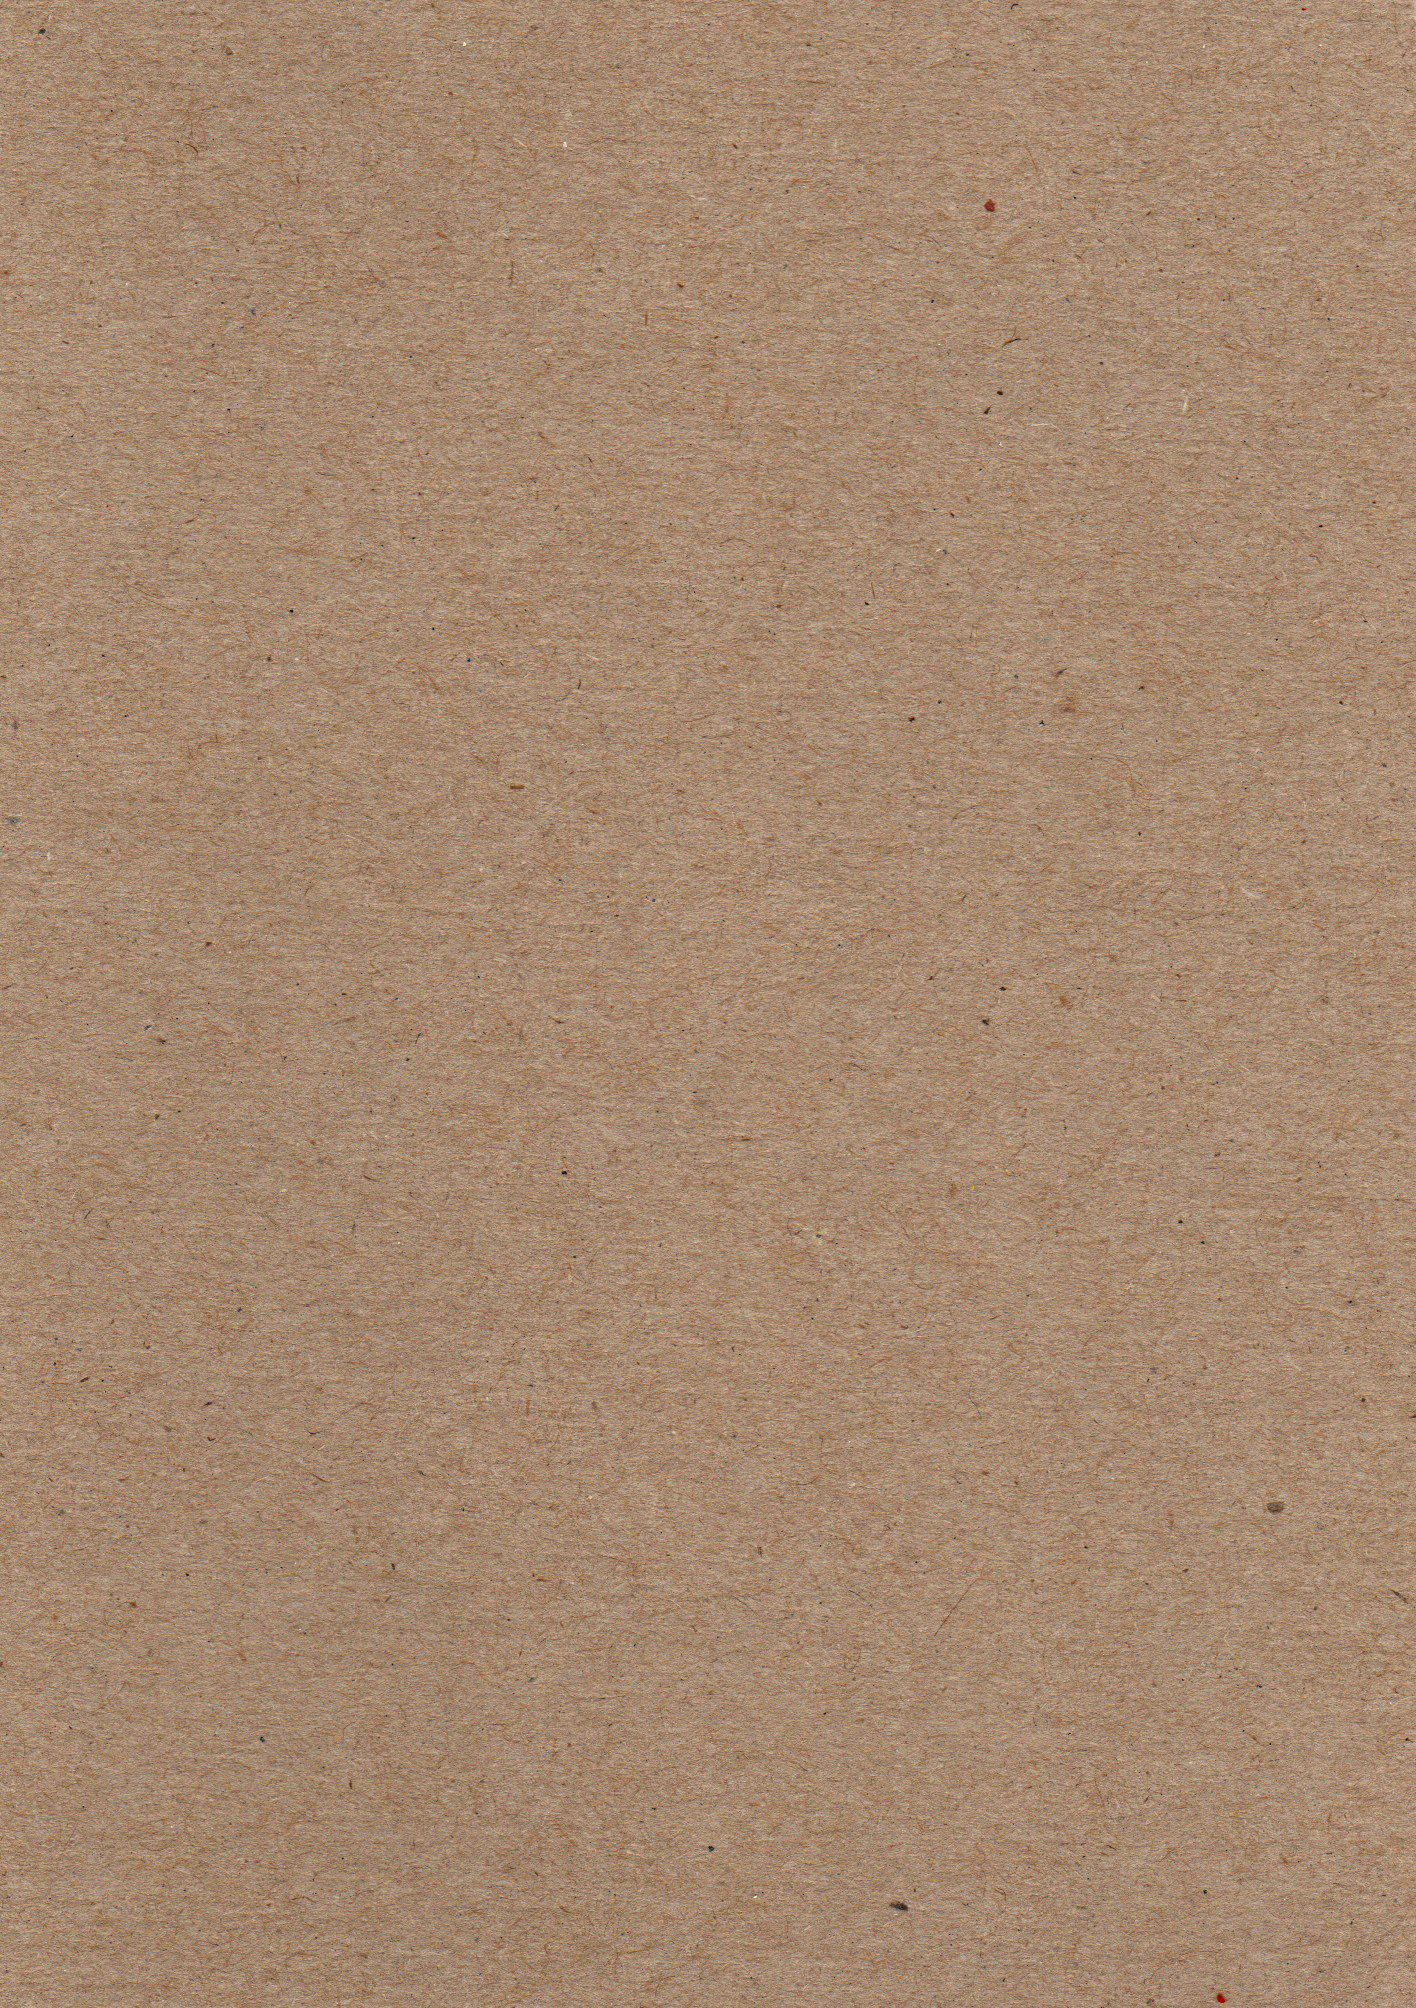 Free High Resolution Textures - Lost and Taken - 15 Brown ...